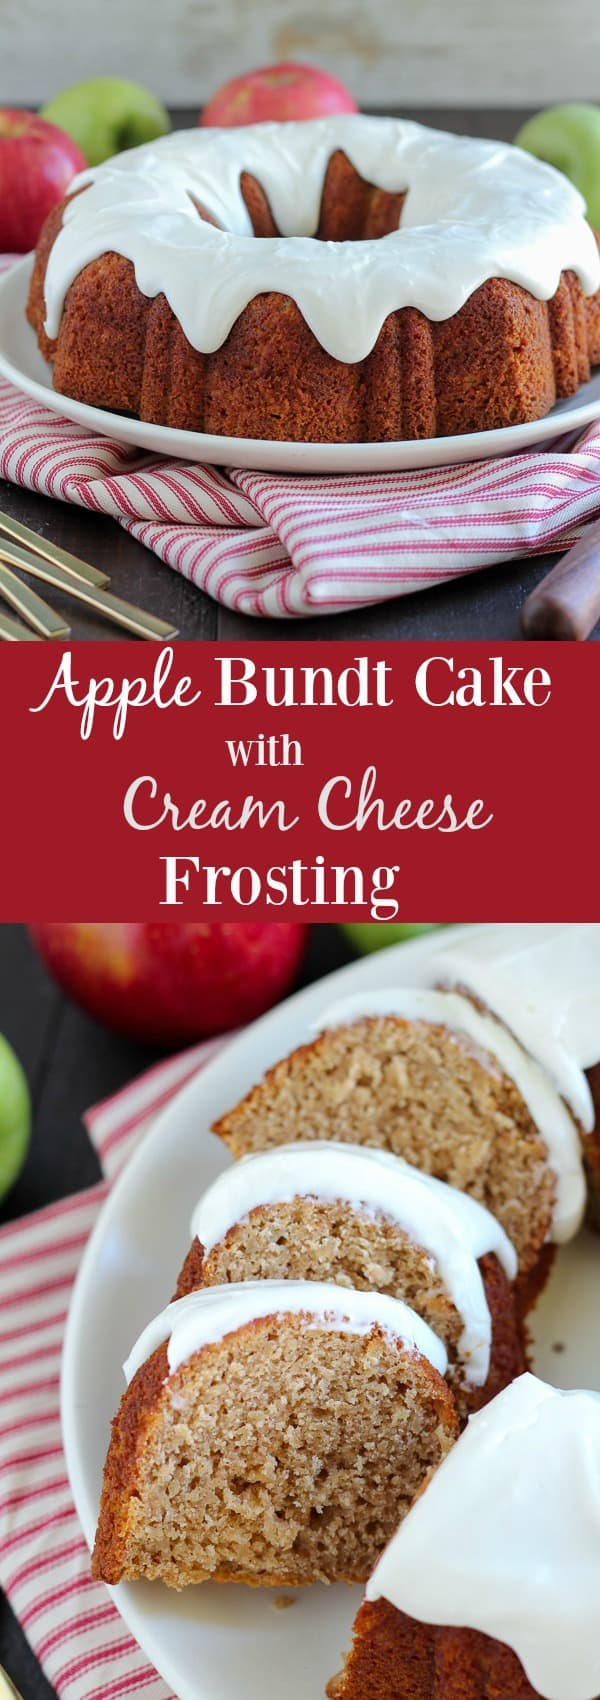 Apple And Cream Cheese Bundt Cake With Caramel Frosting